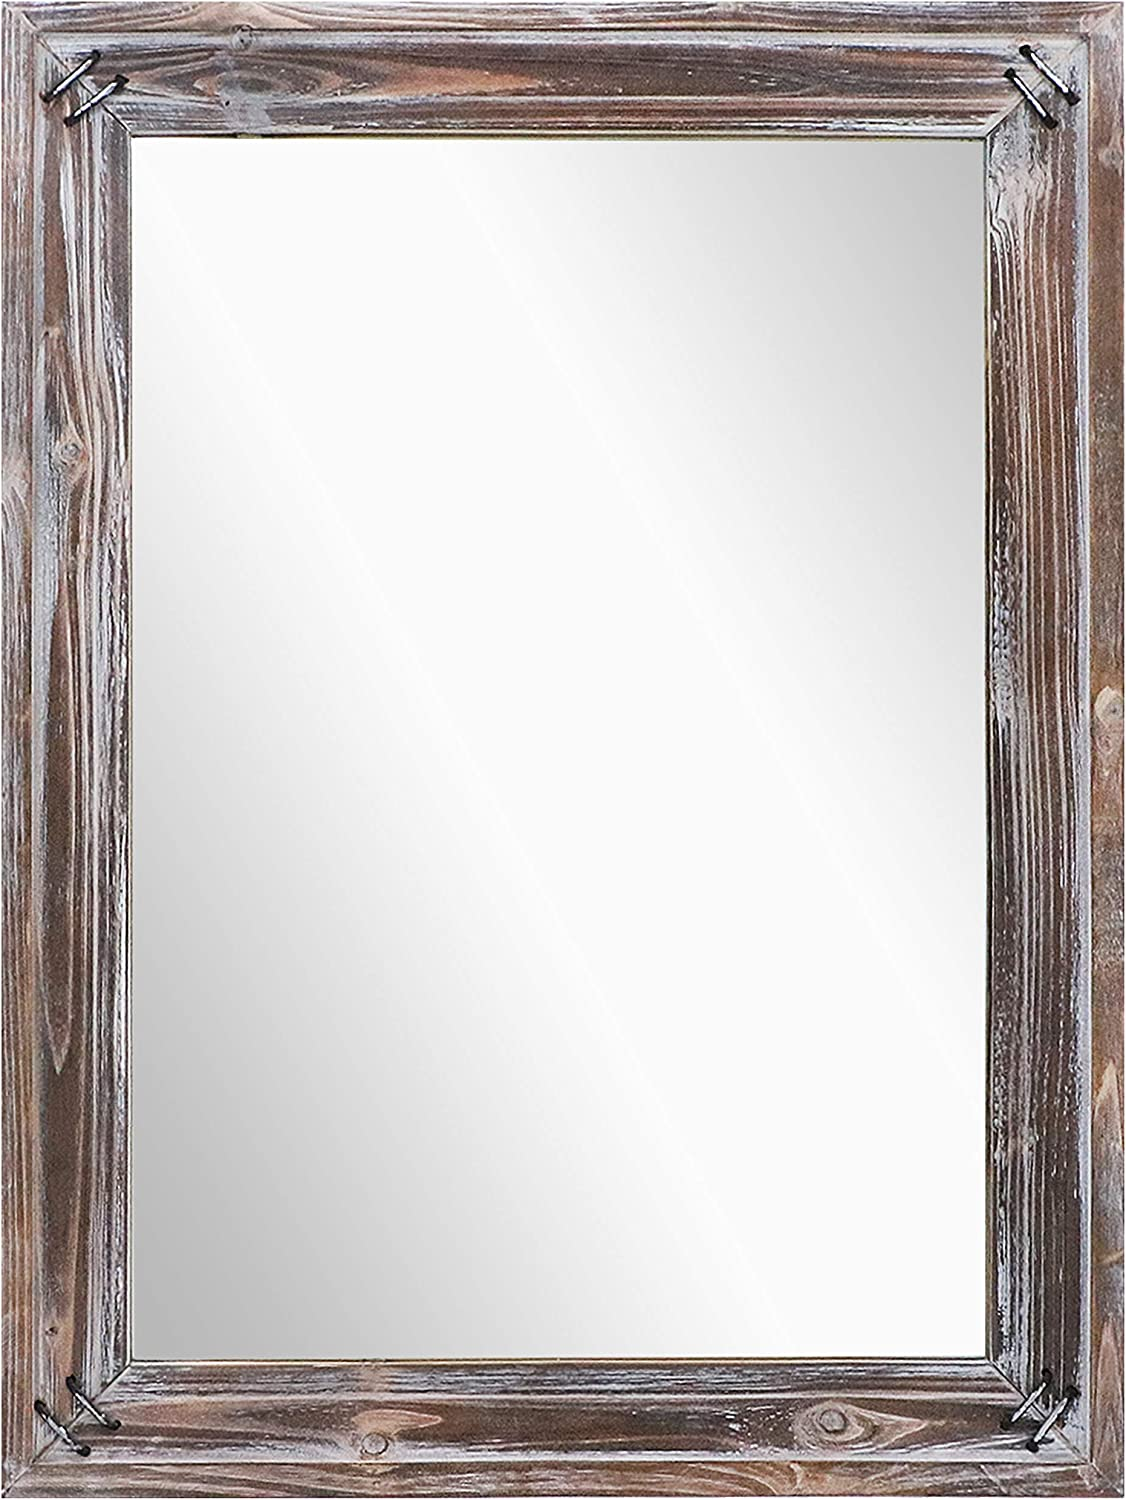 "Barnyard Designs Decorative Wall Hanging Mirror, Rustic Vintage Farmhouse Distressed Wood and Metal Mirror Wall Decor, 18"" x 24"""